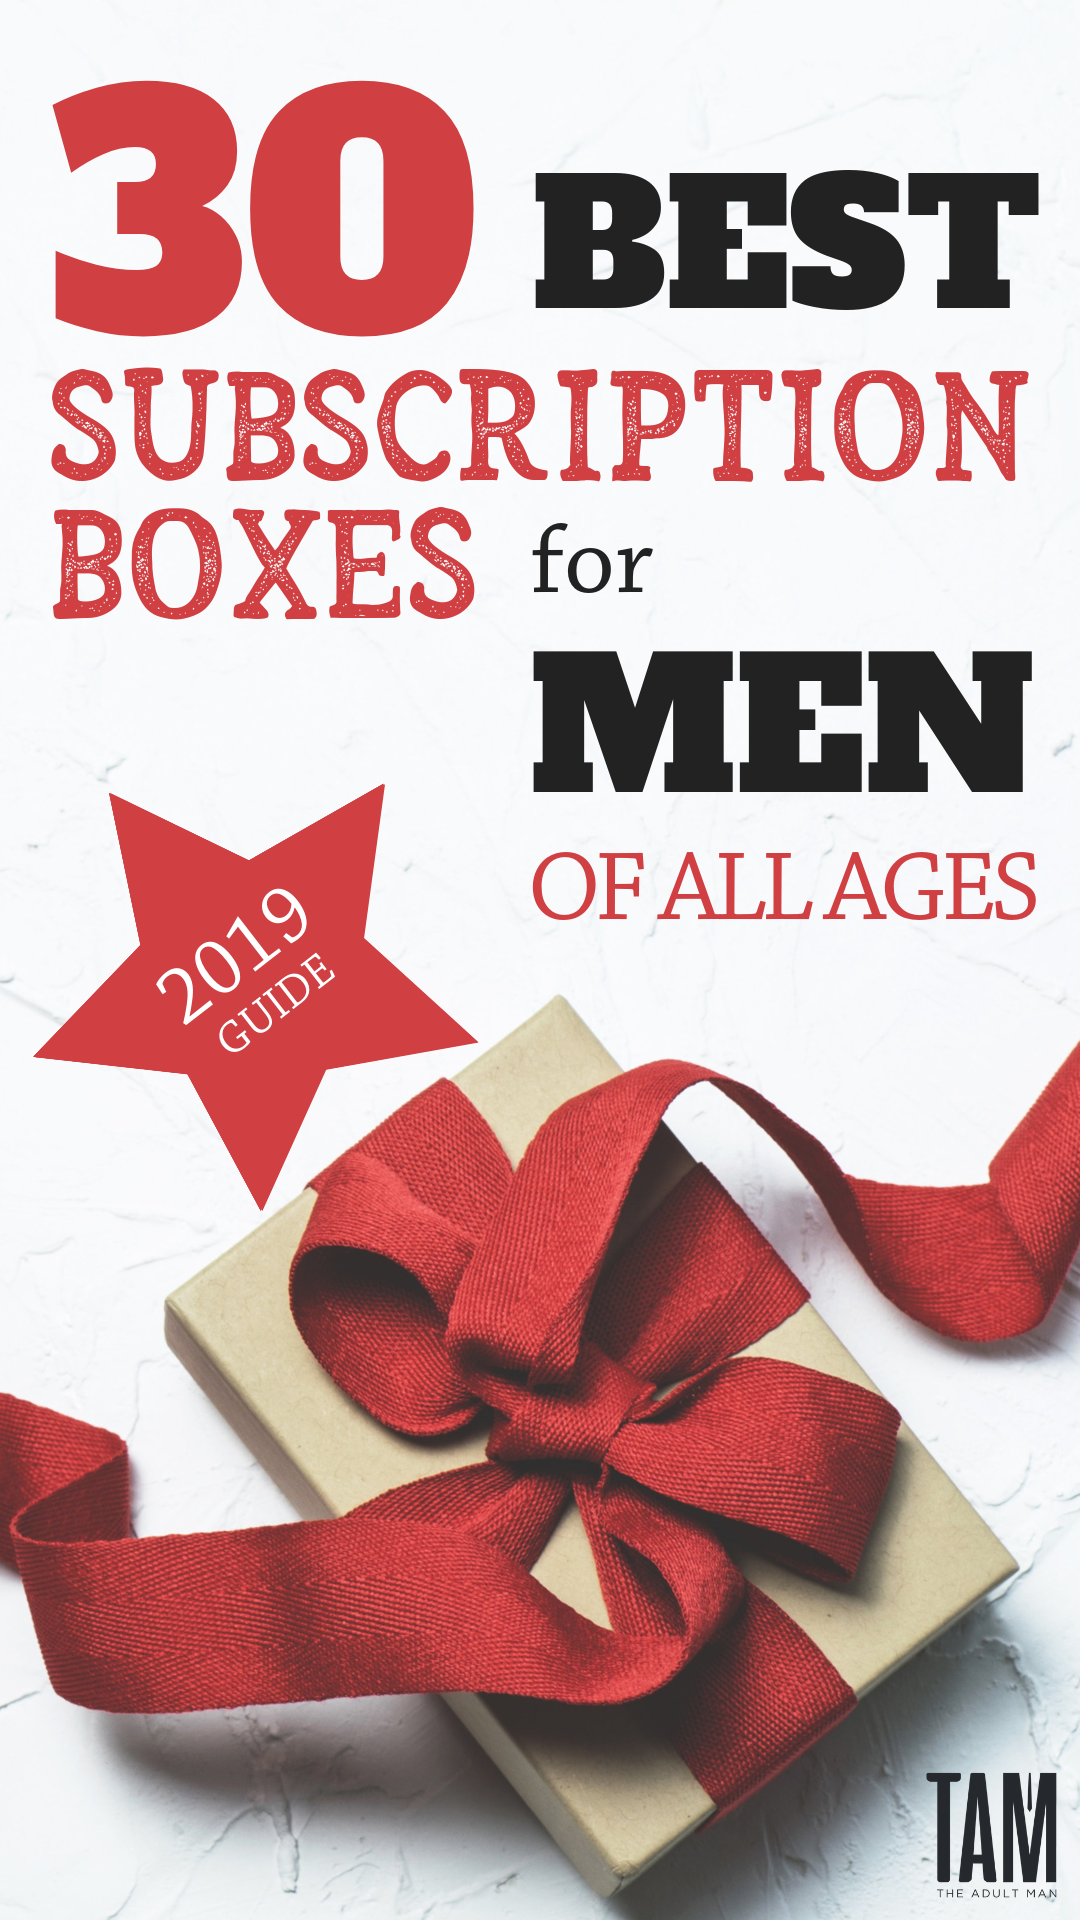 Best Christmas Subscription Boxes 2020 Pin on SELF IMPROVEMENT